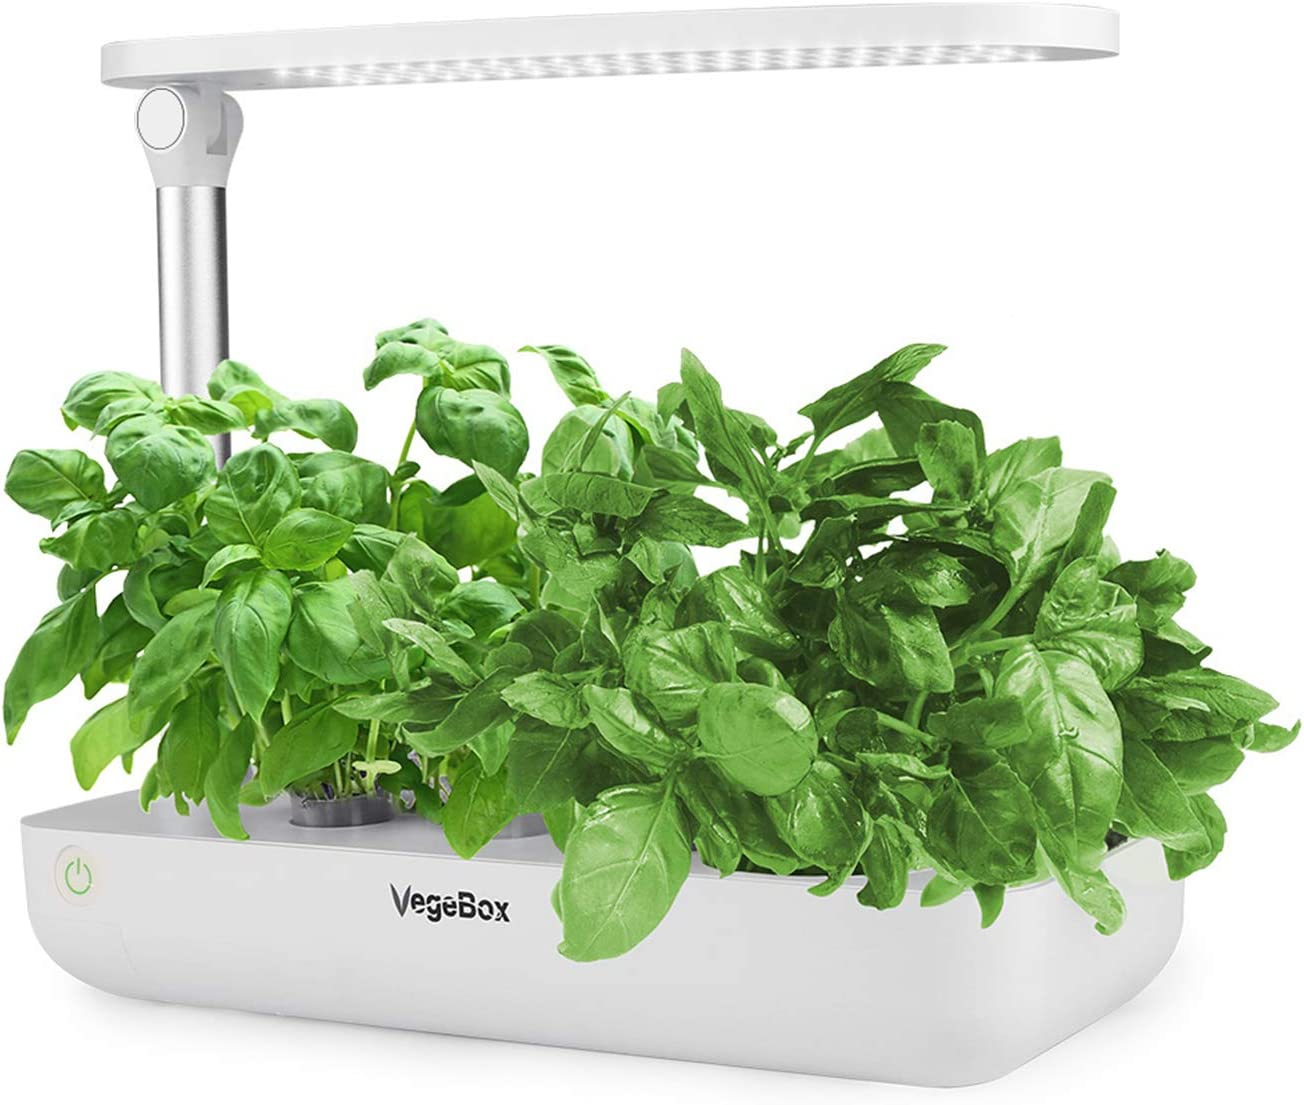 50% Off Coupon – Vegebox Hydroponics Growing System